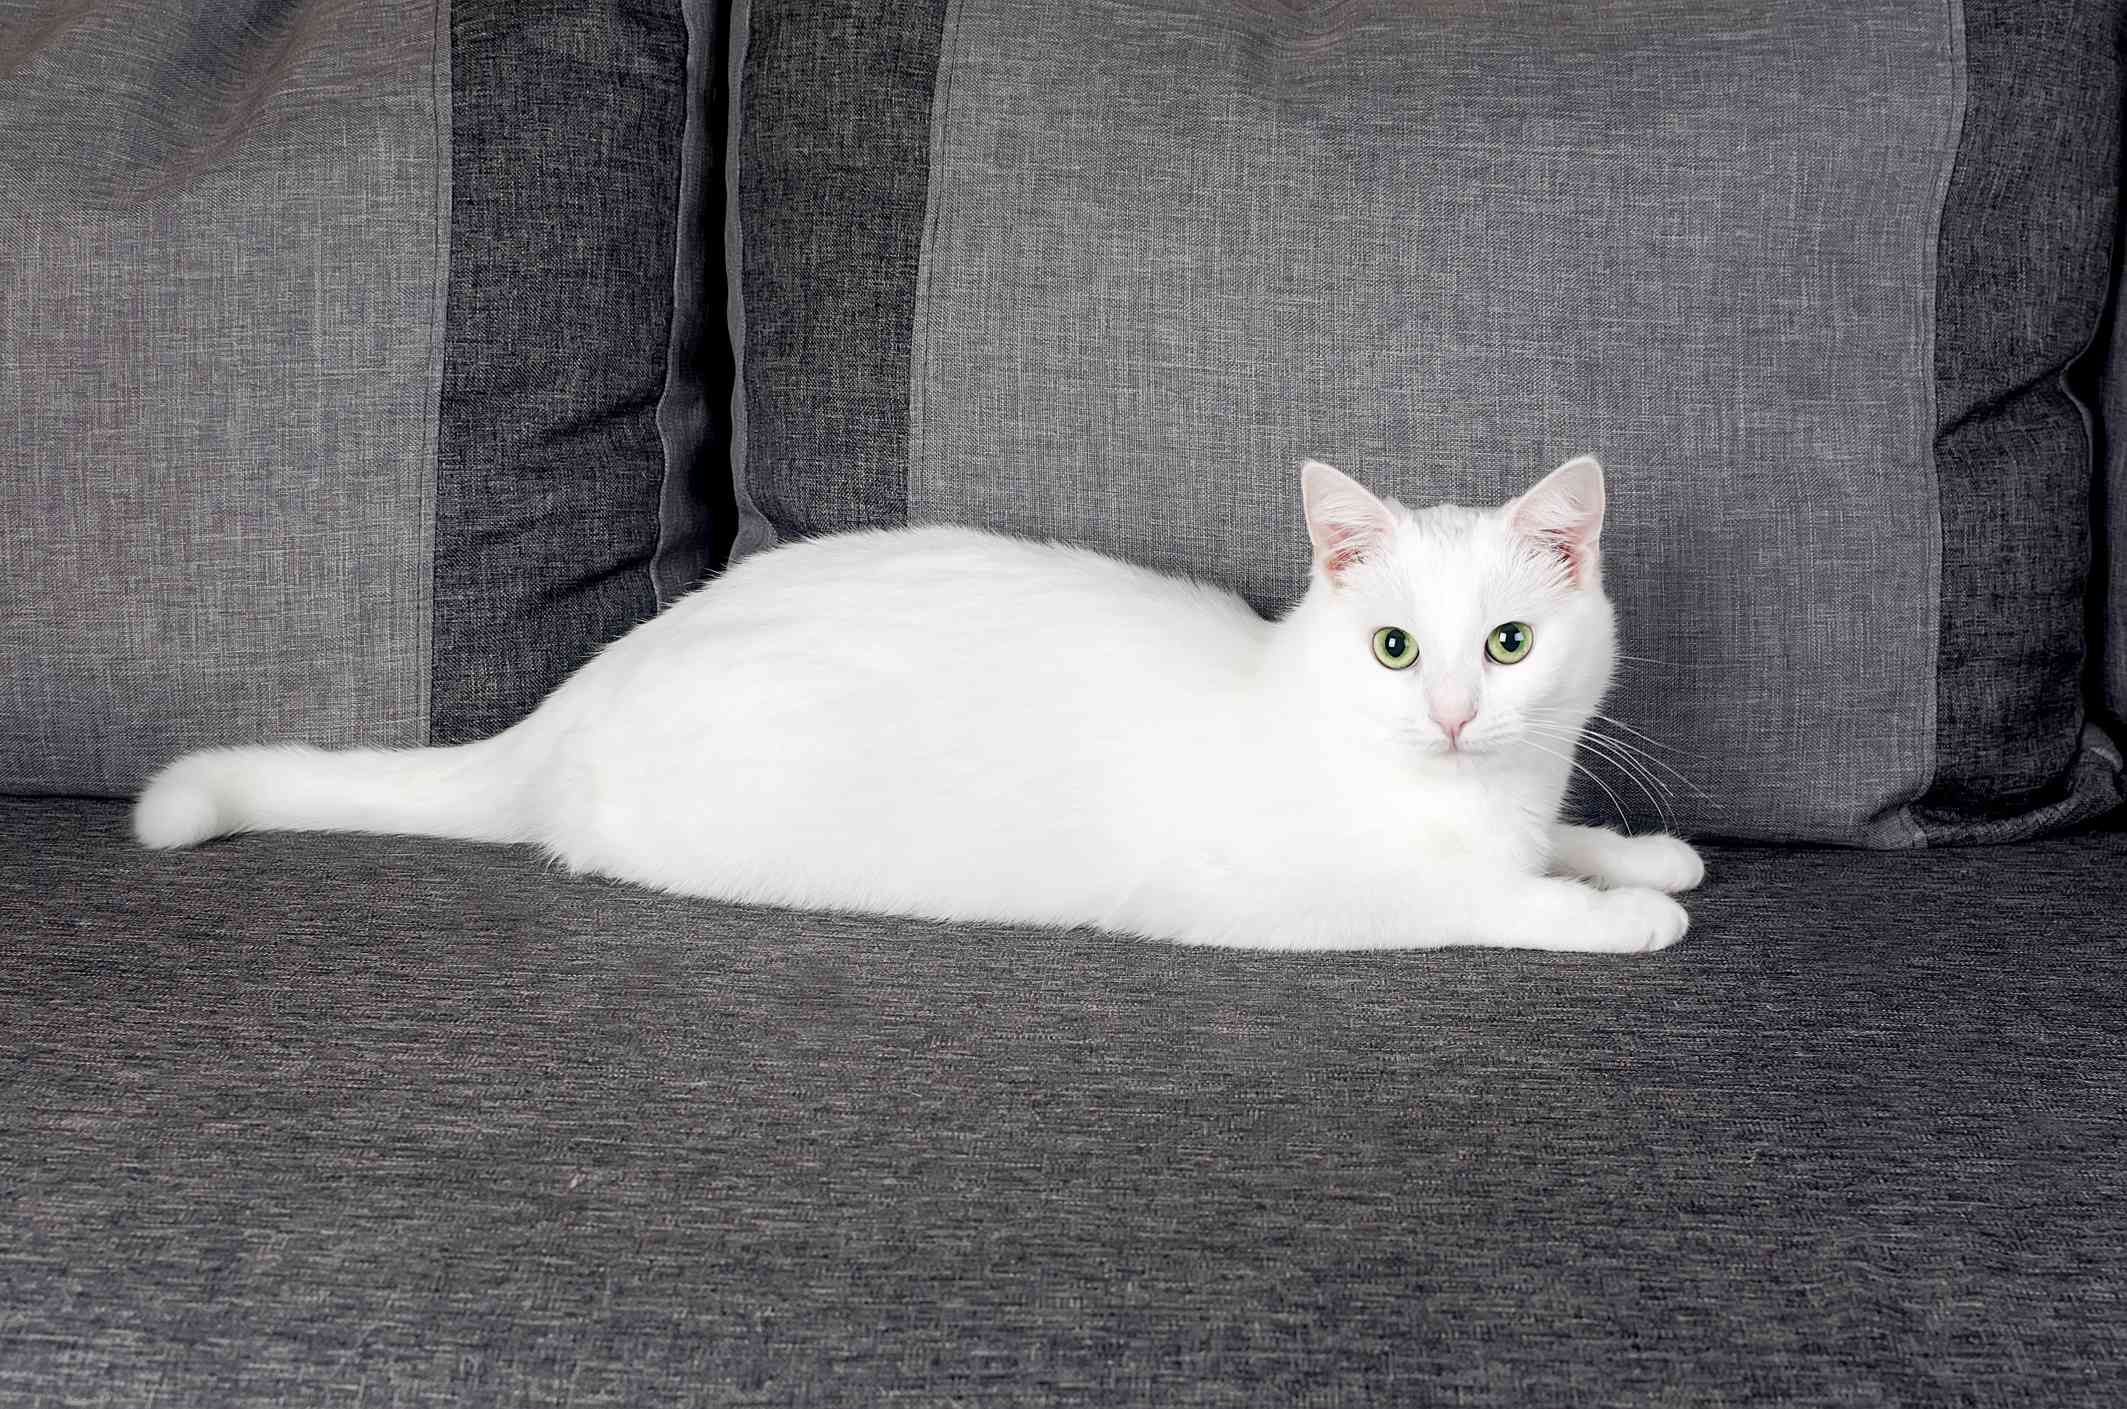 white Turkish angora cat stretched out on a gray couch